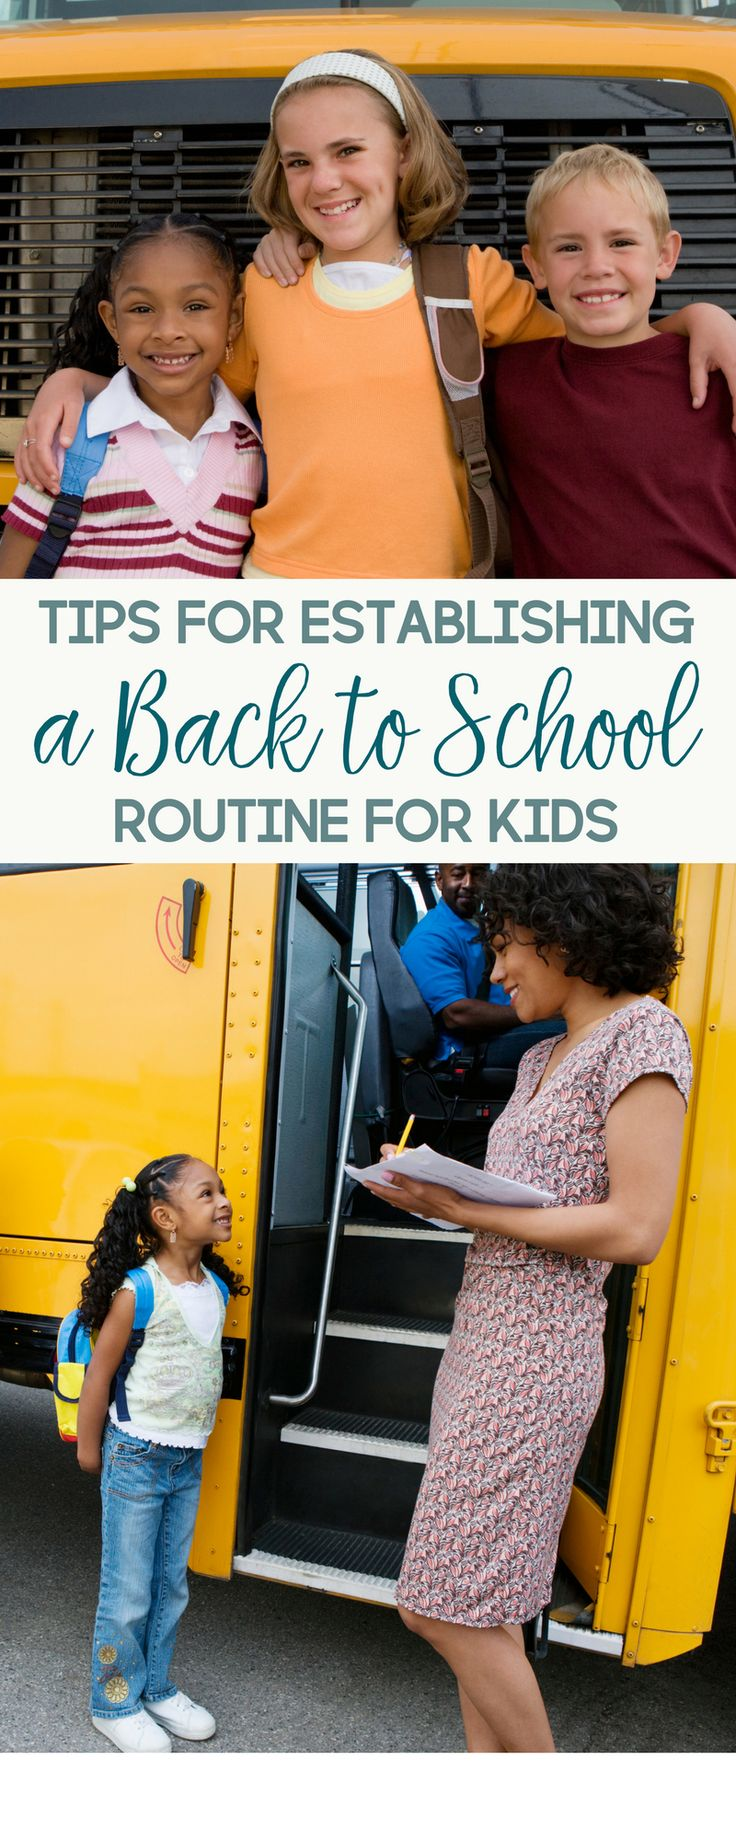 Schools across the country will be back in session soon. Here are 6 tips for establishing a back to school routine for kids.